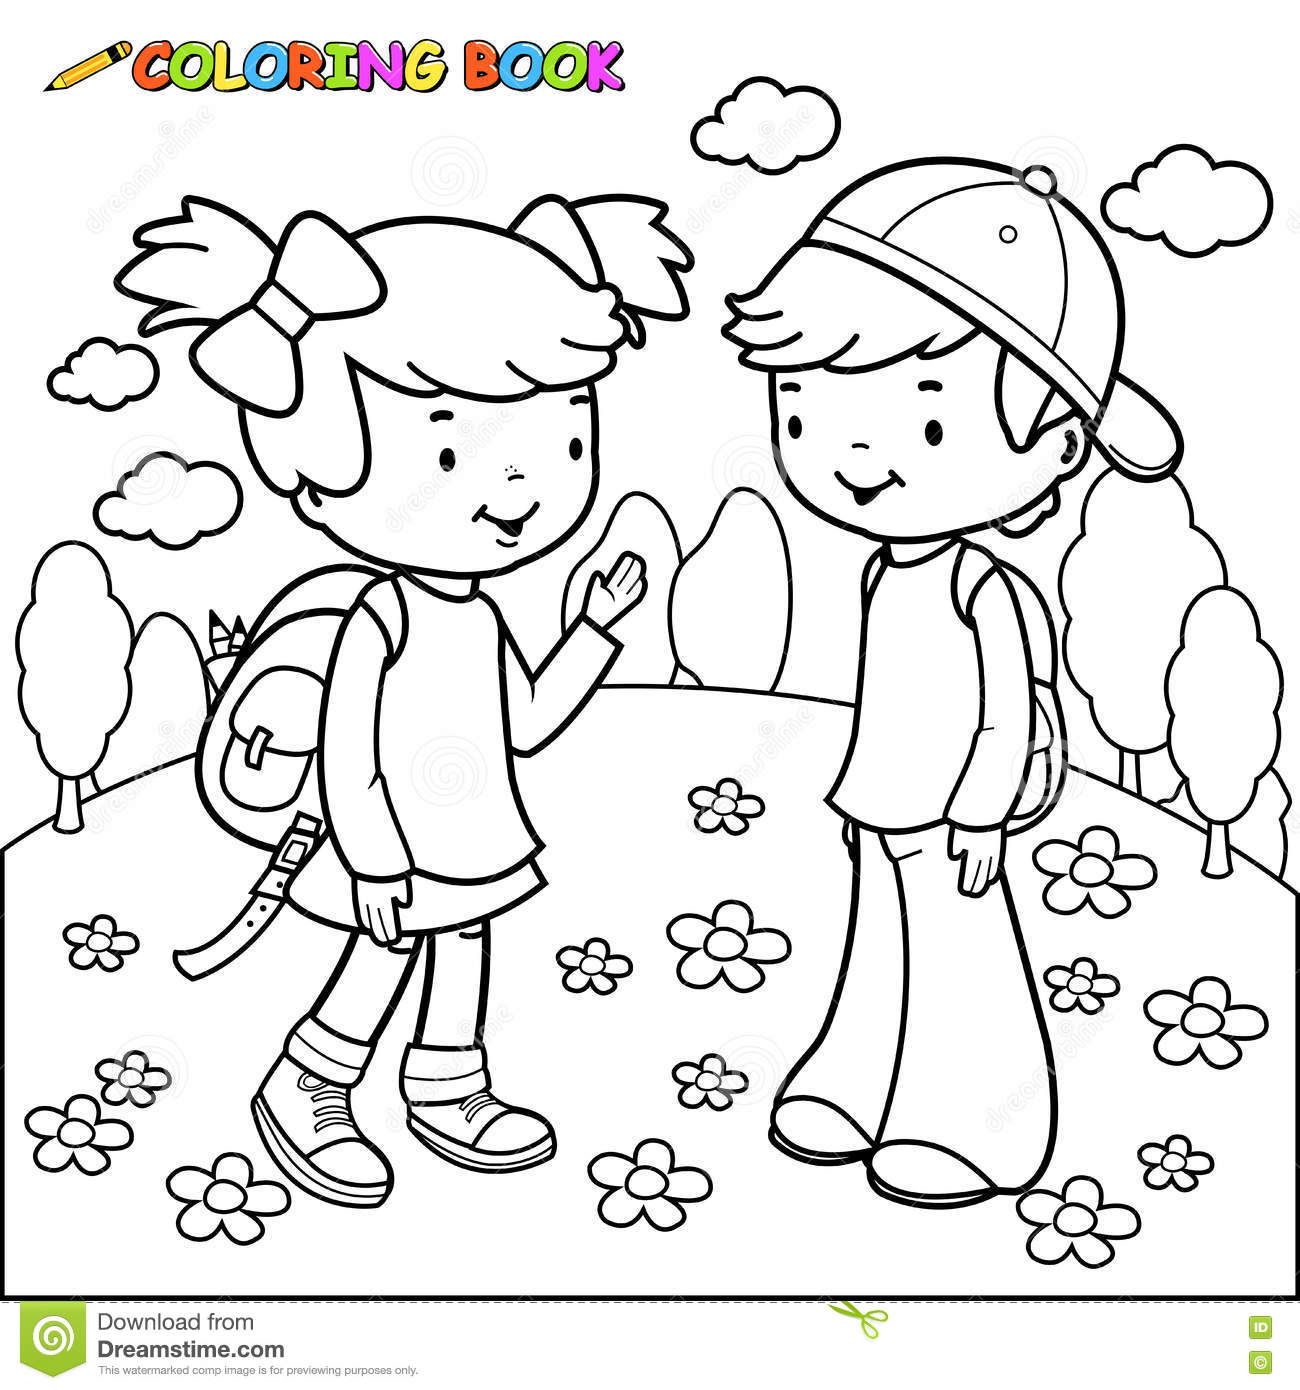 Little Girl And Little Boy Coloring Page - Free Printable Coloring ... | 1390x1300